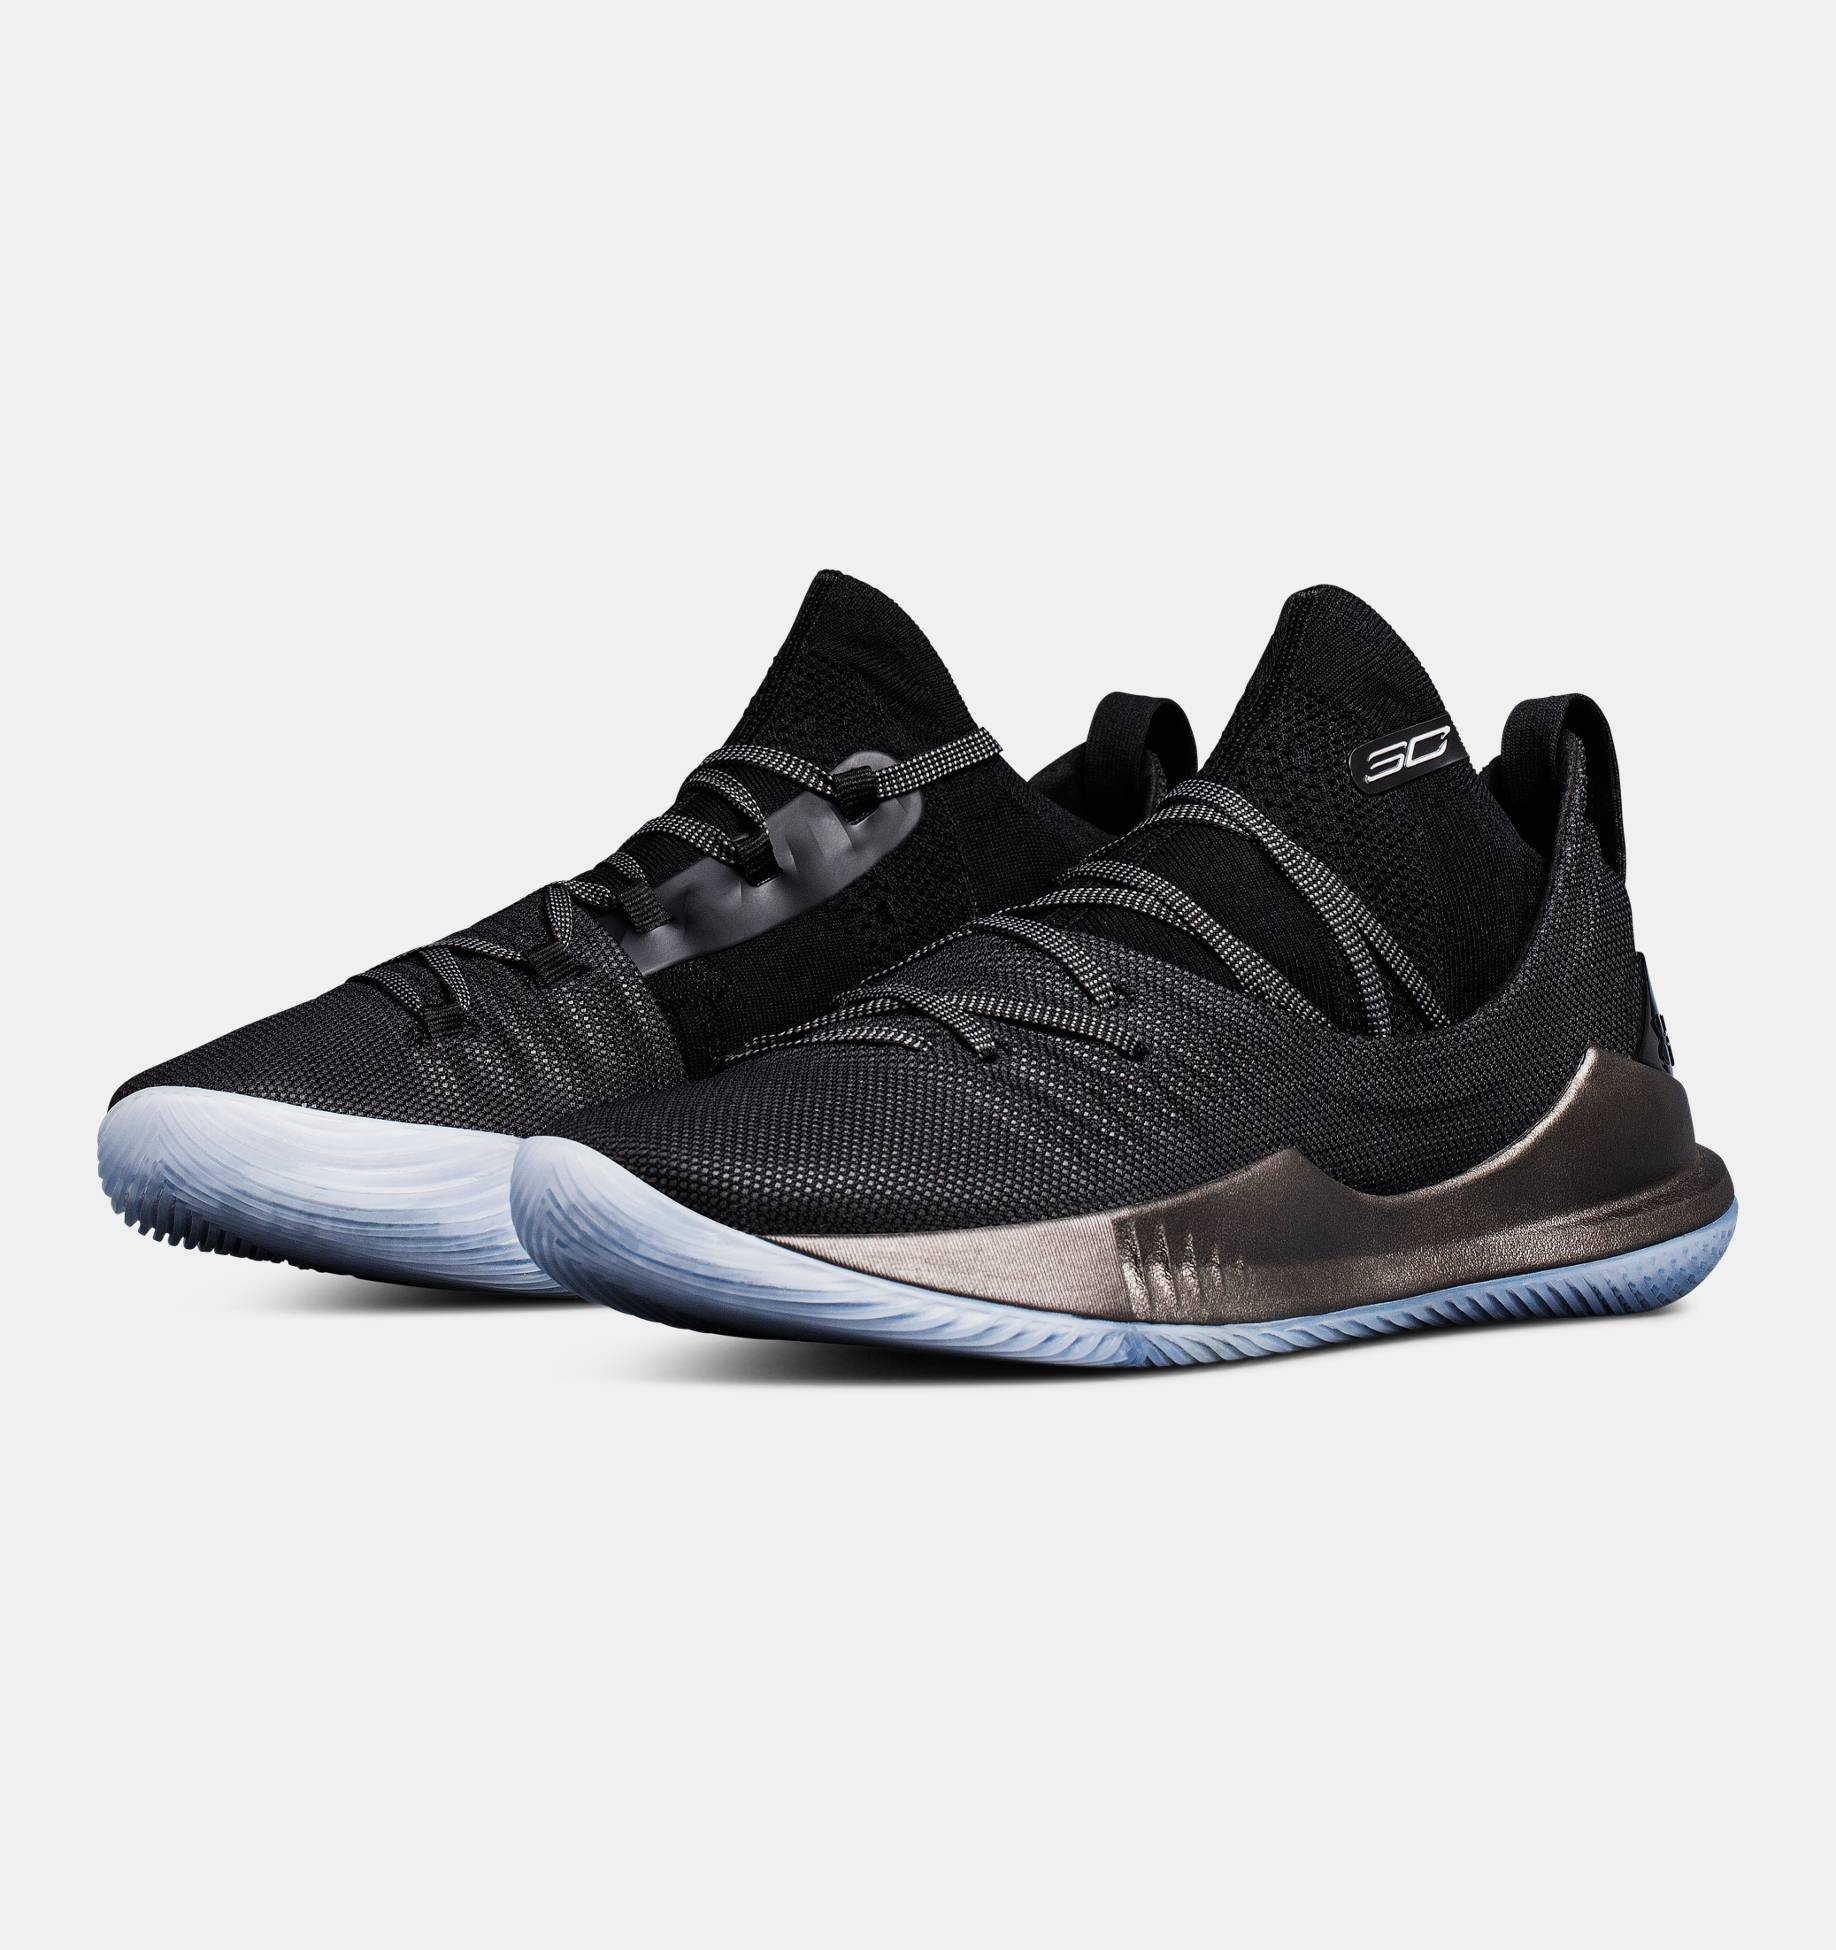 under armour curry 5 pi day restock